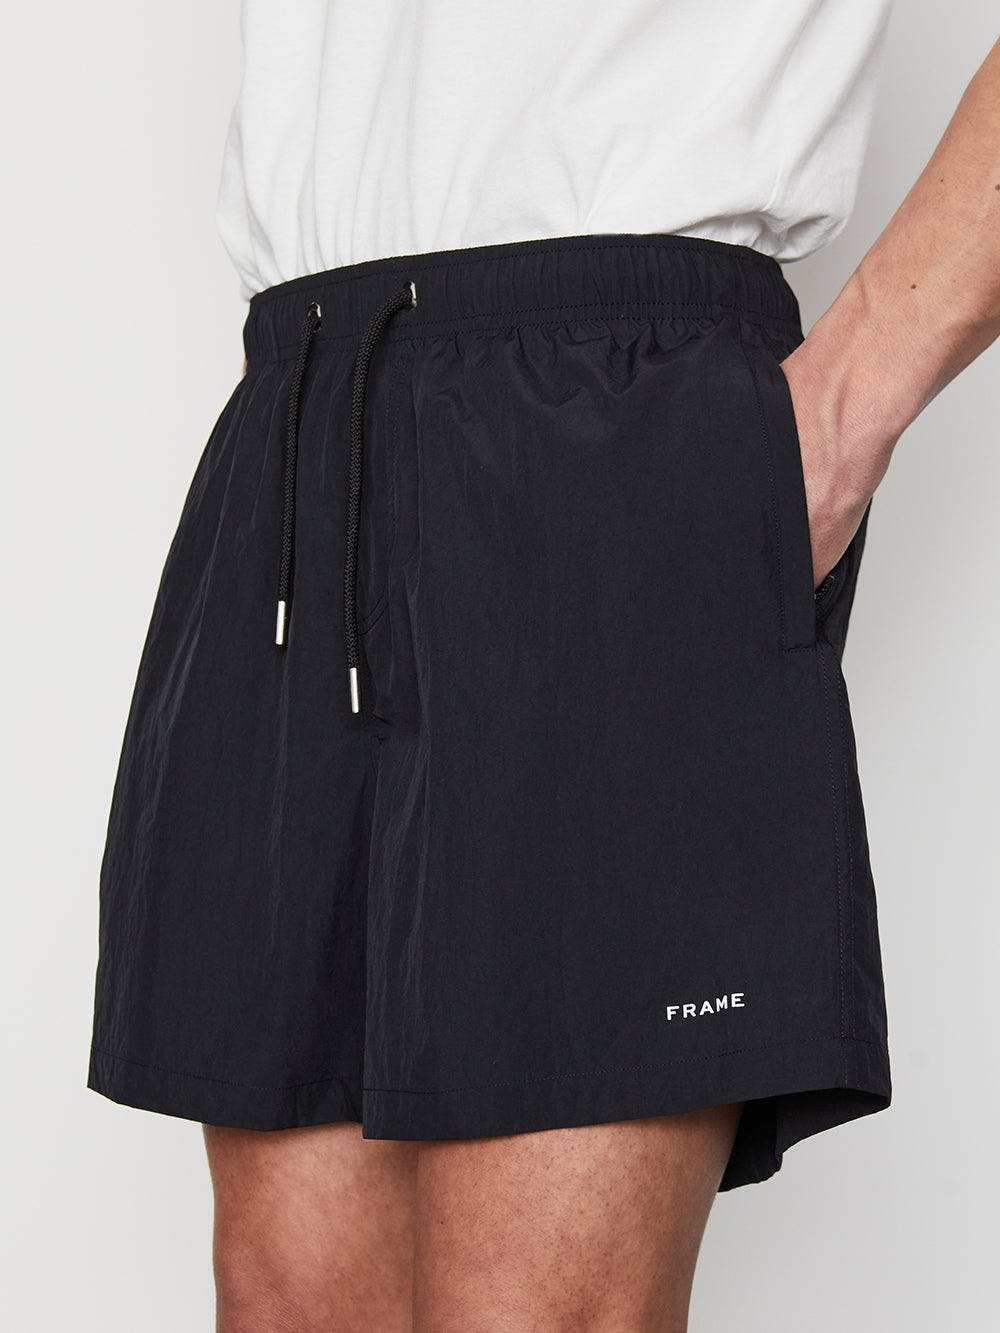 shorts side detail view